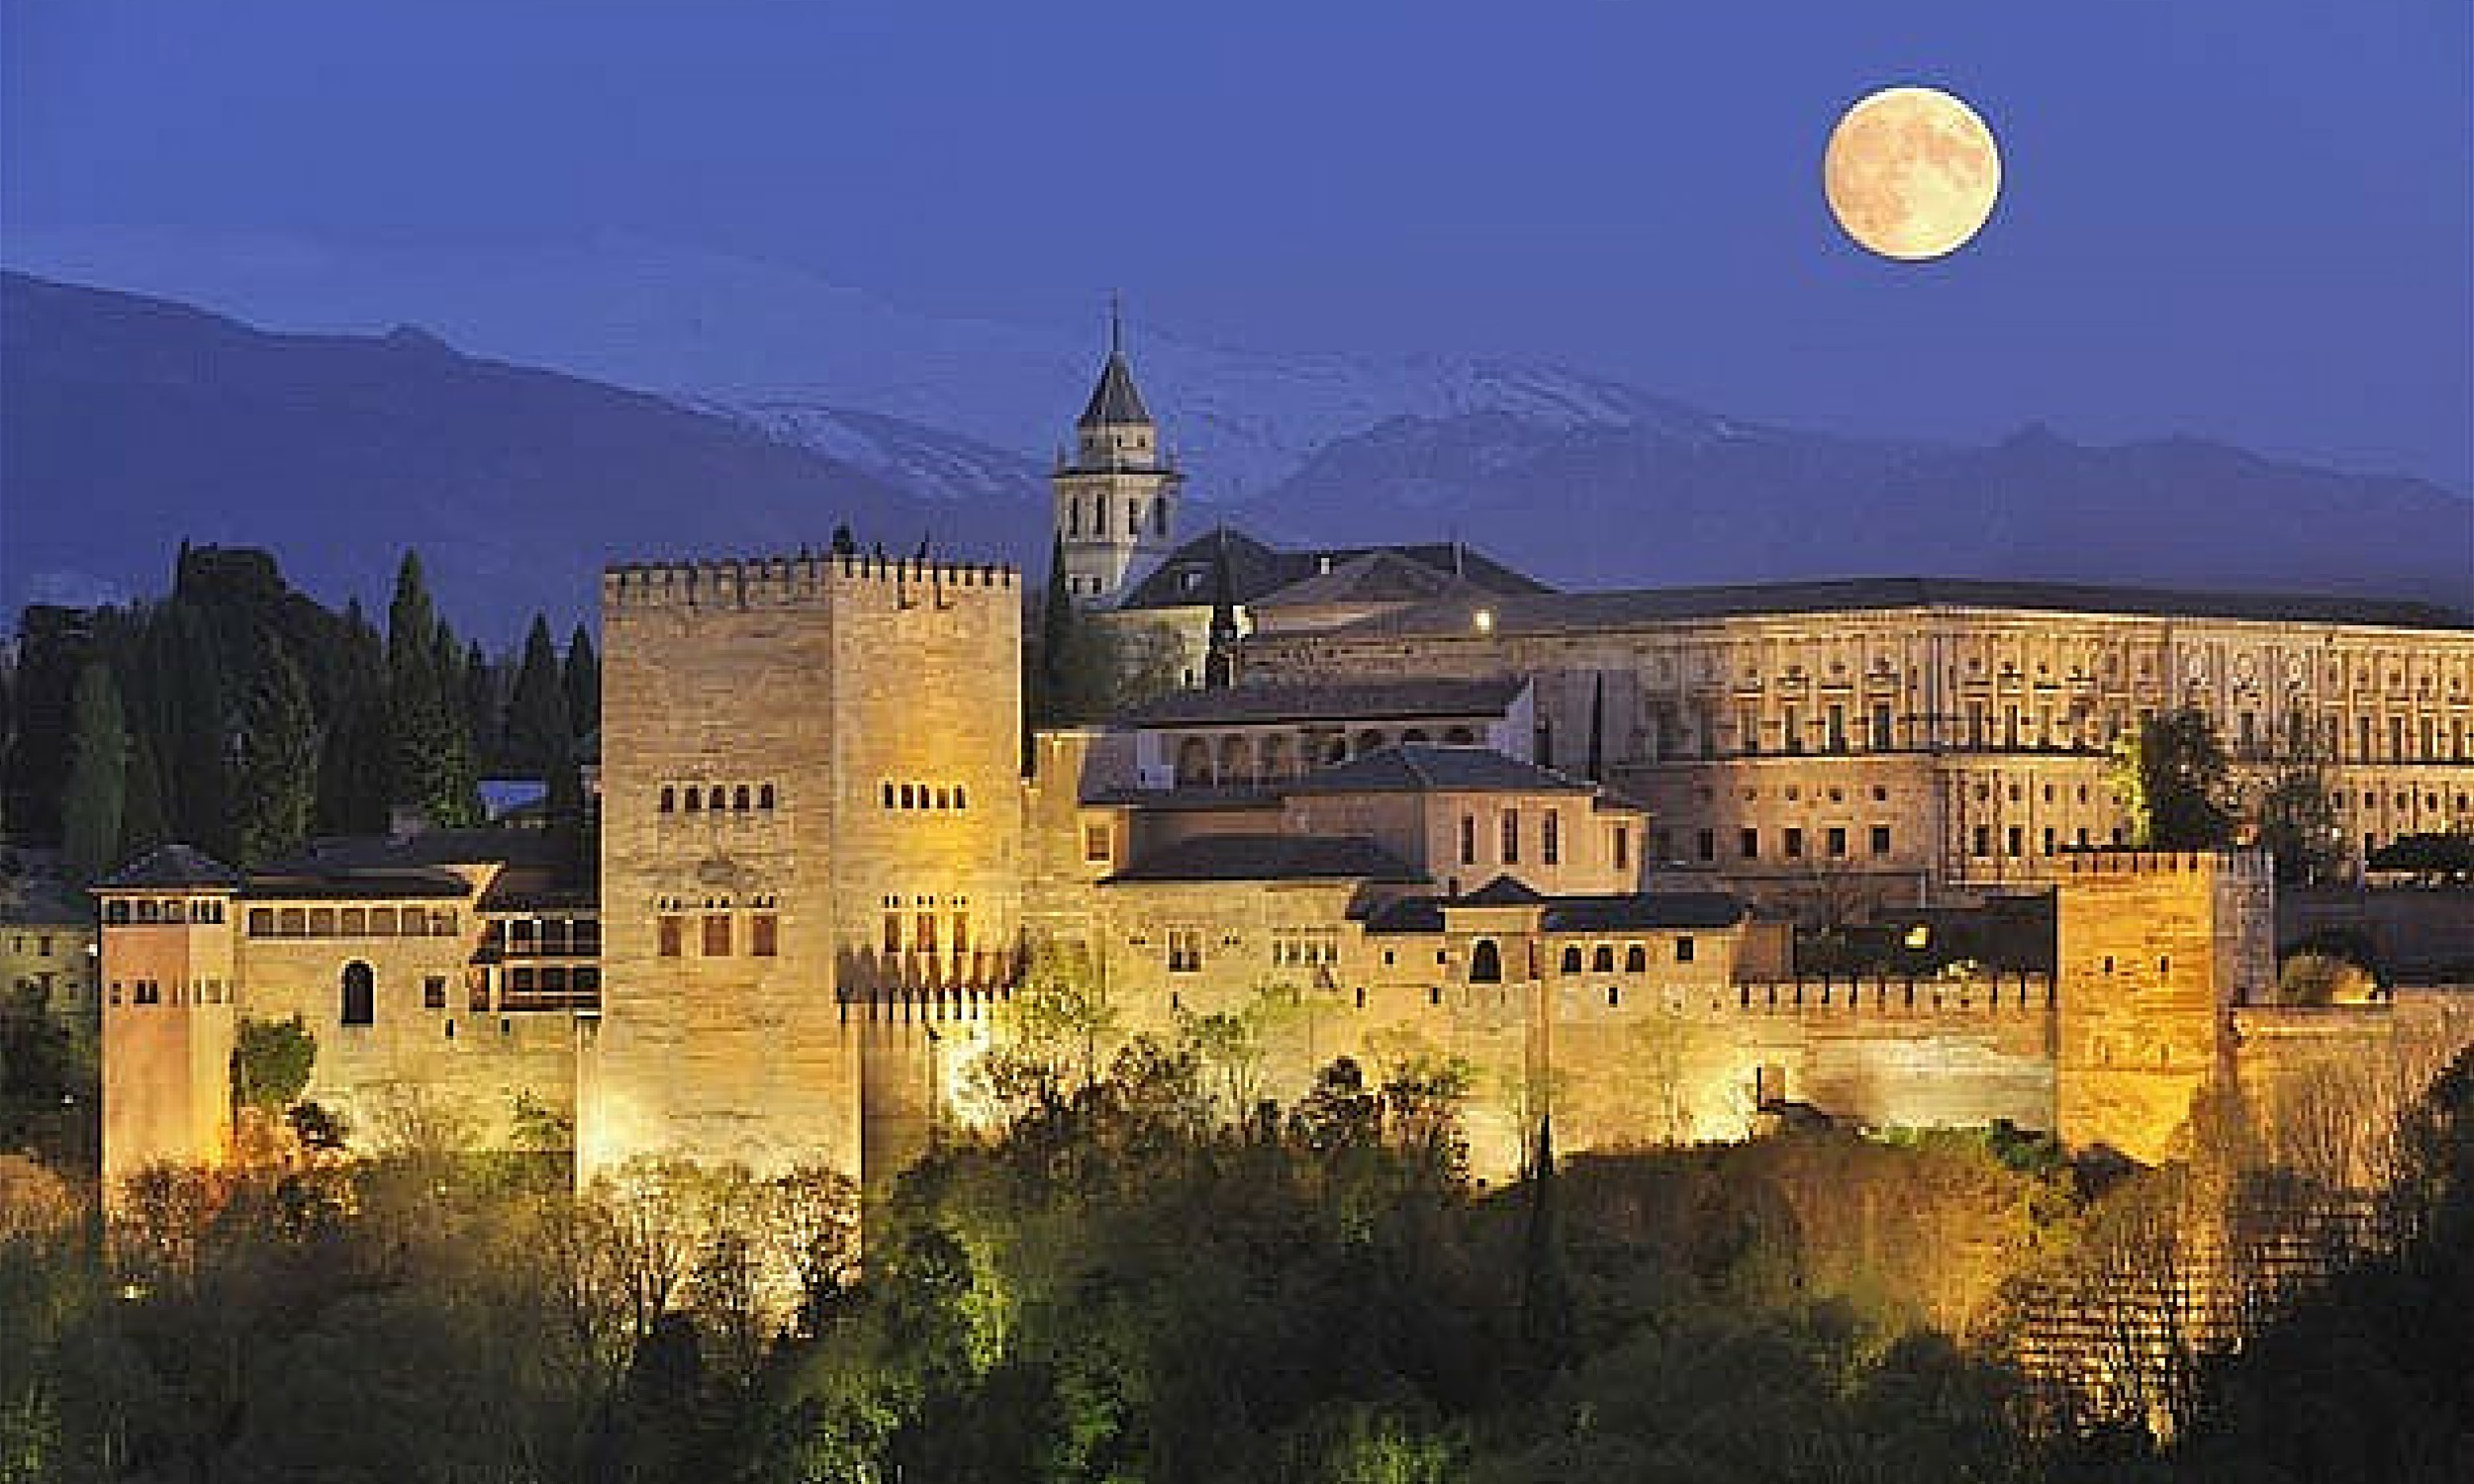 TOP 5 TIPS FOR VISITING THE ALHAMBRA PALACE IN GRANADA